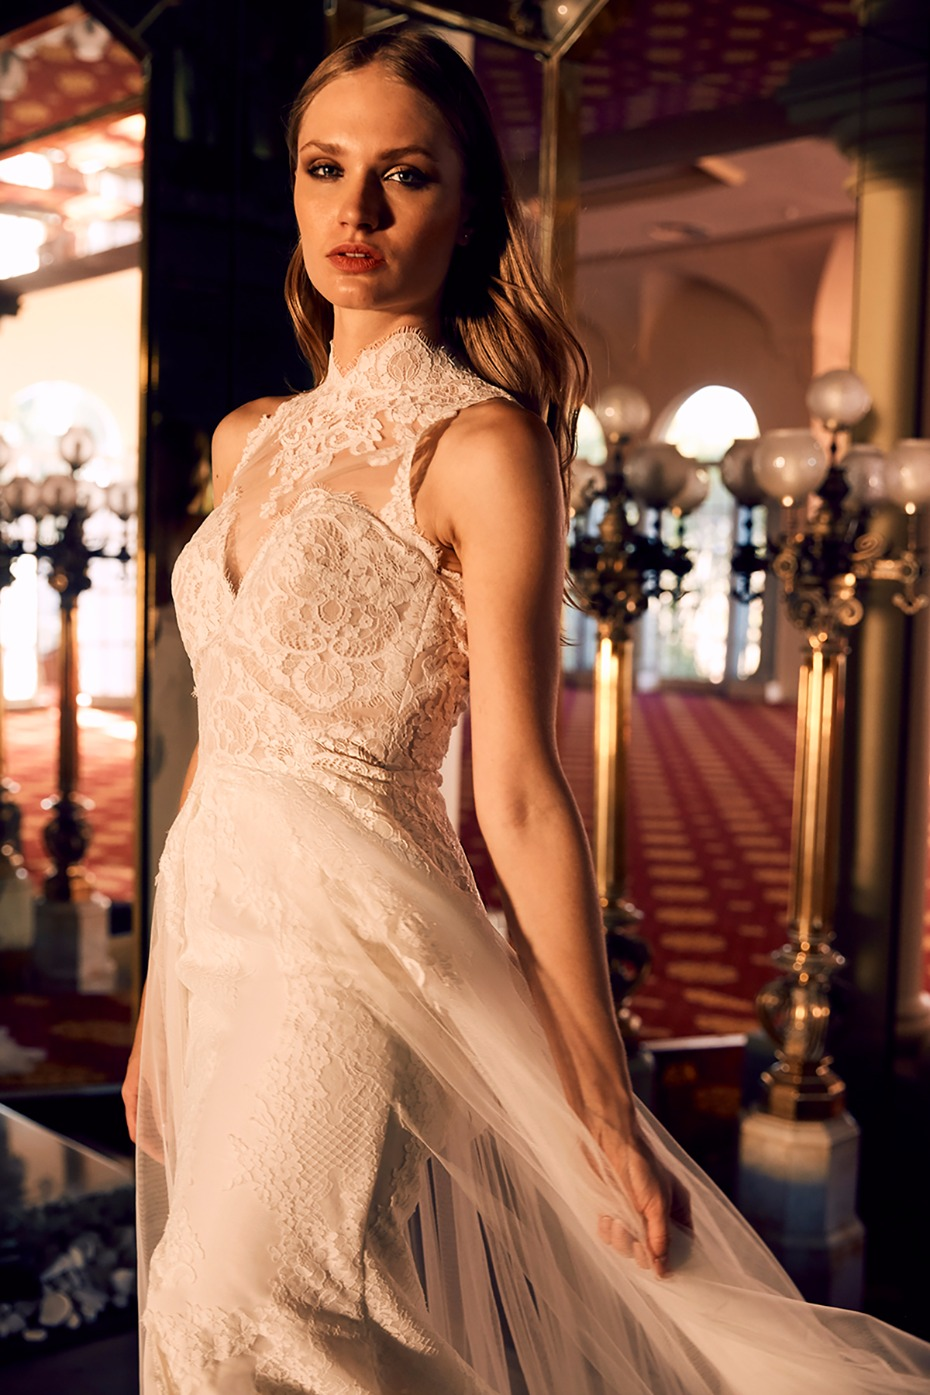 La Sposa wedding dress with high lace collar